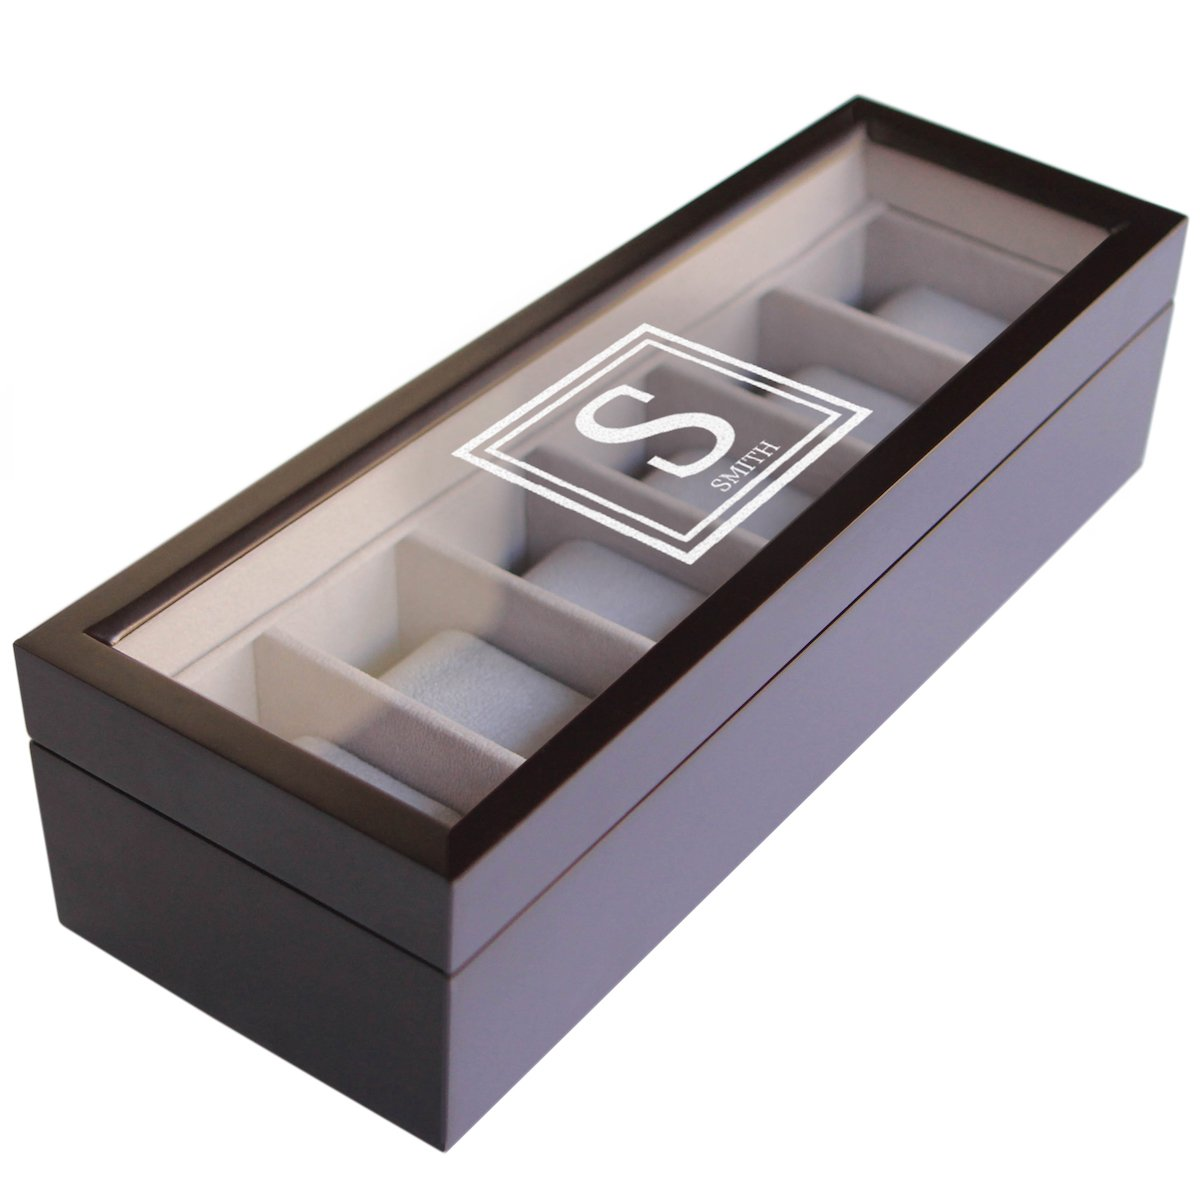 Custom Engraved Solid Espresso Wood Watch Boxes - 6 slot by case Elegance